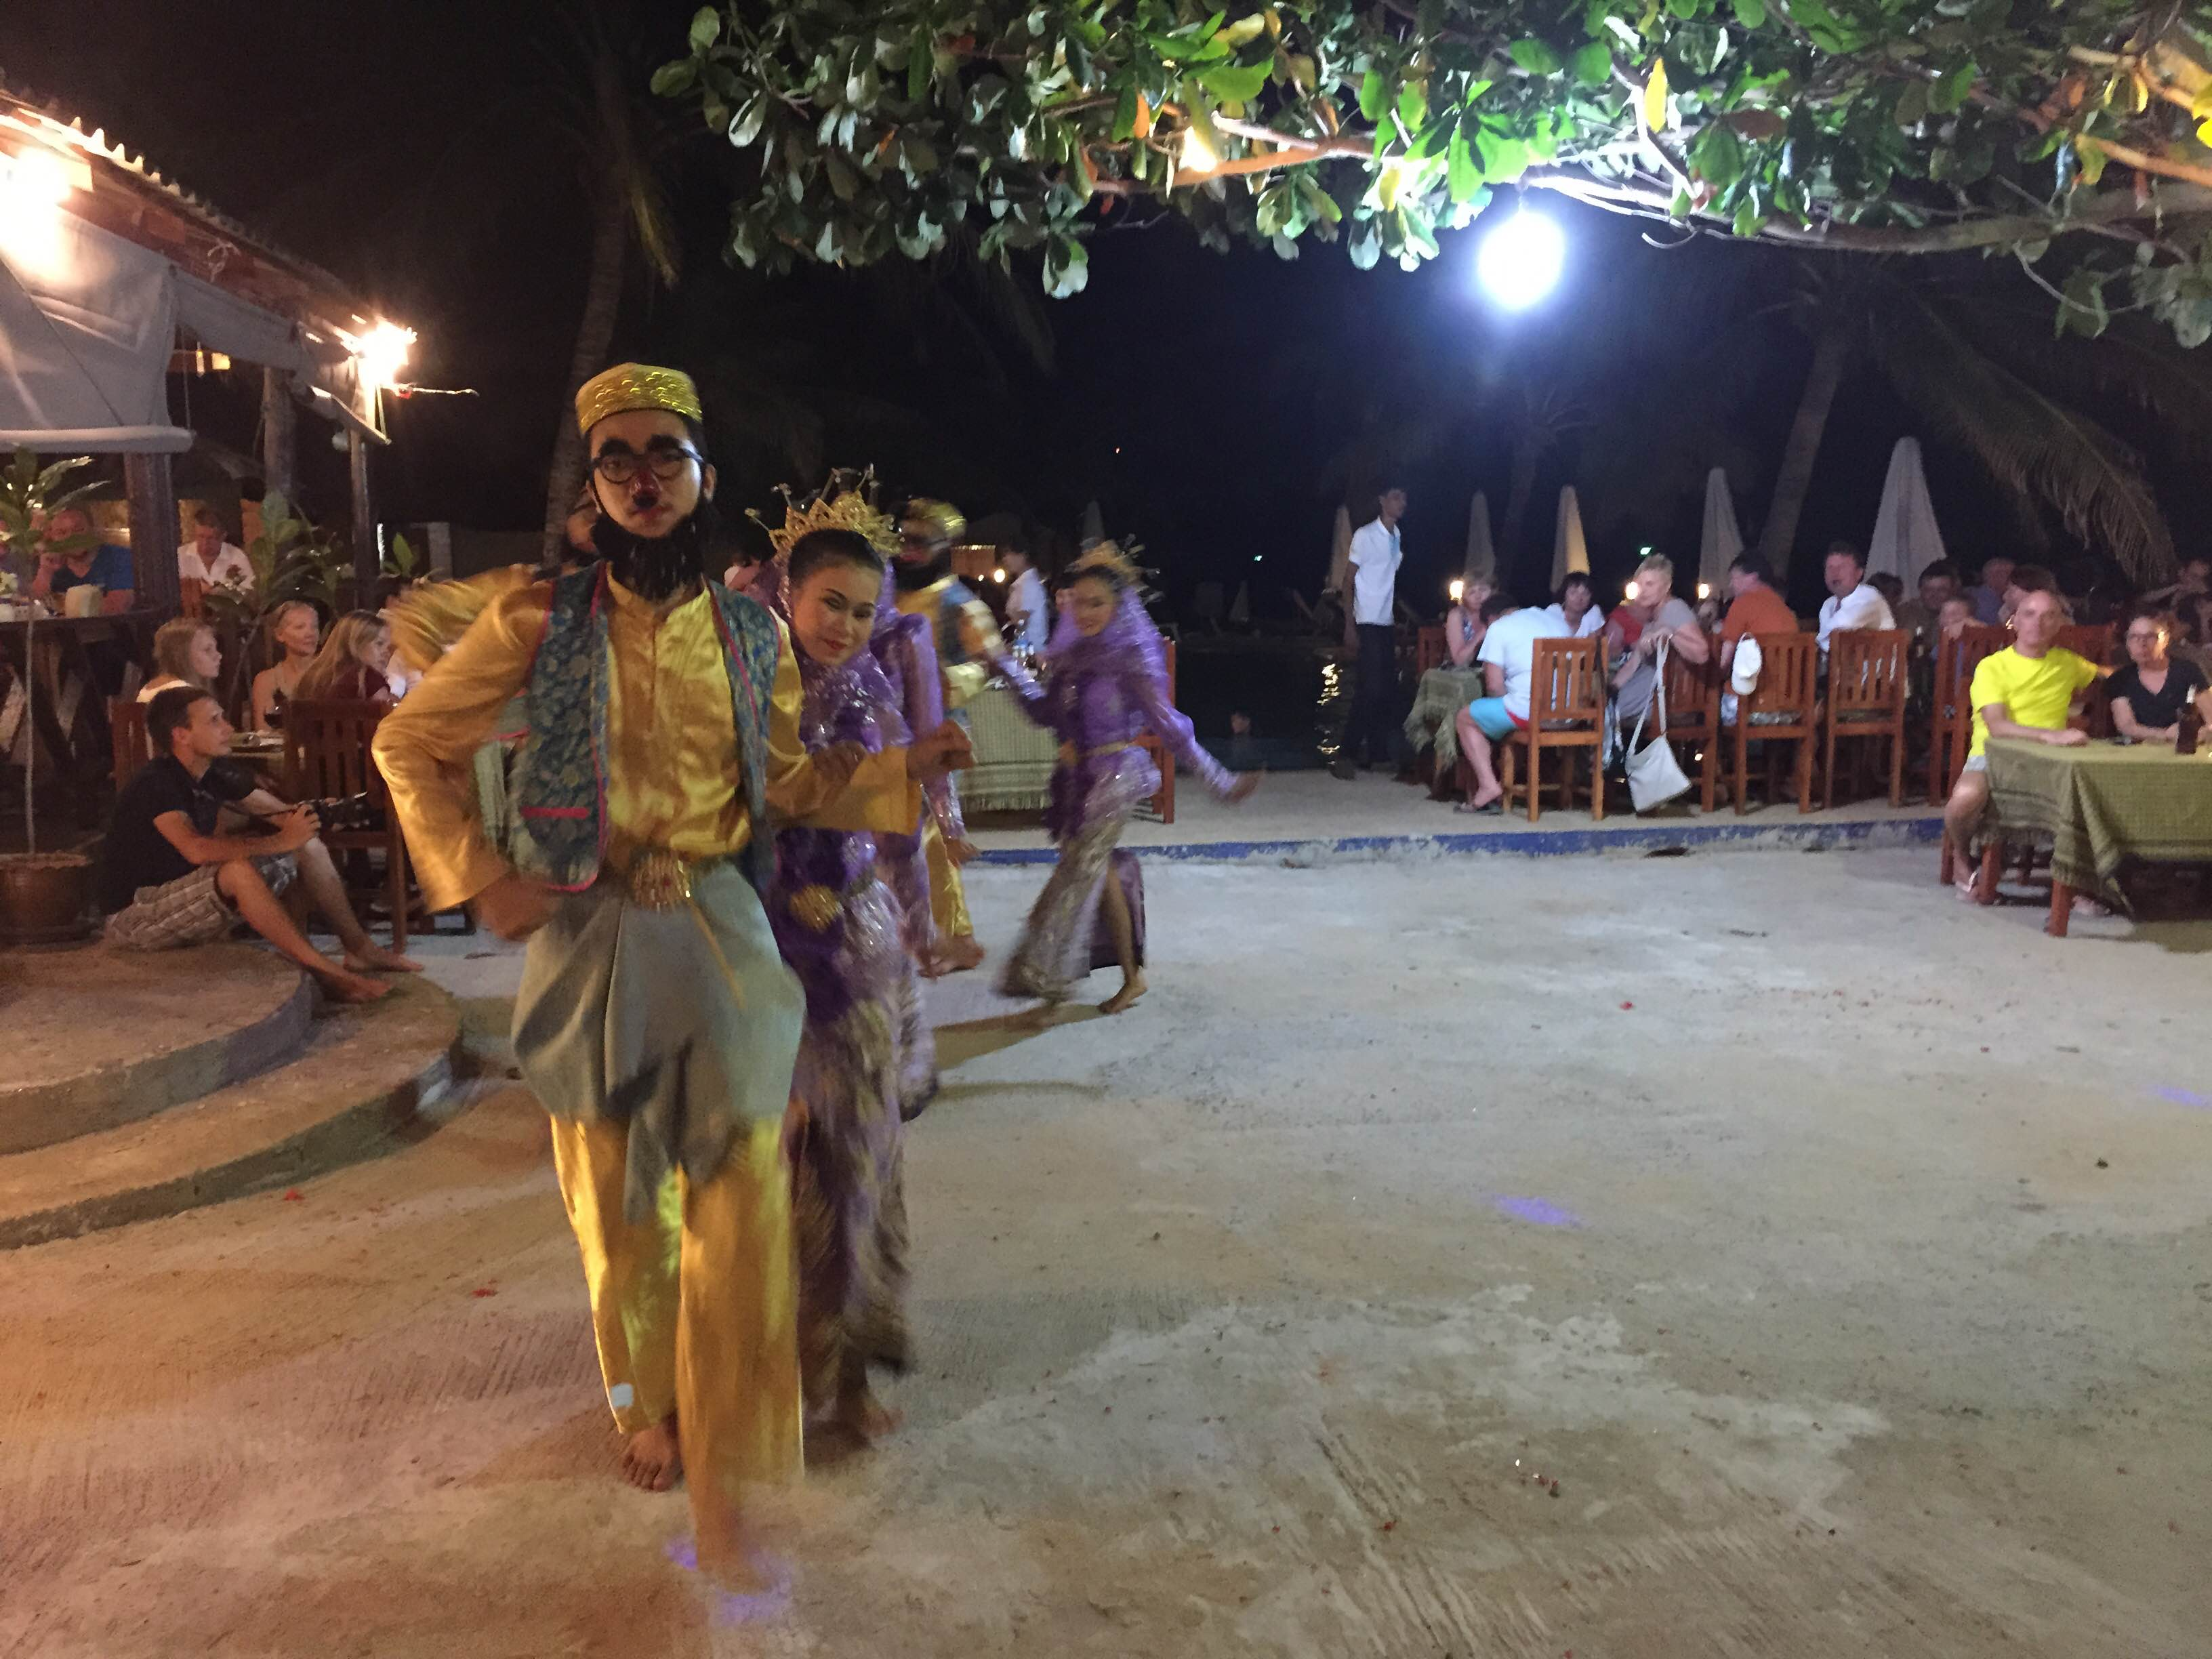 That part of the dinner show where Thai boys dressed up as middle eastern men (wearing the Groucho Marx glasses, except that the noses were cherry red) holding their beards and watching women dance and do work—soooo strange.